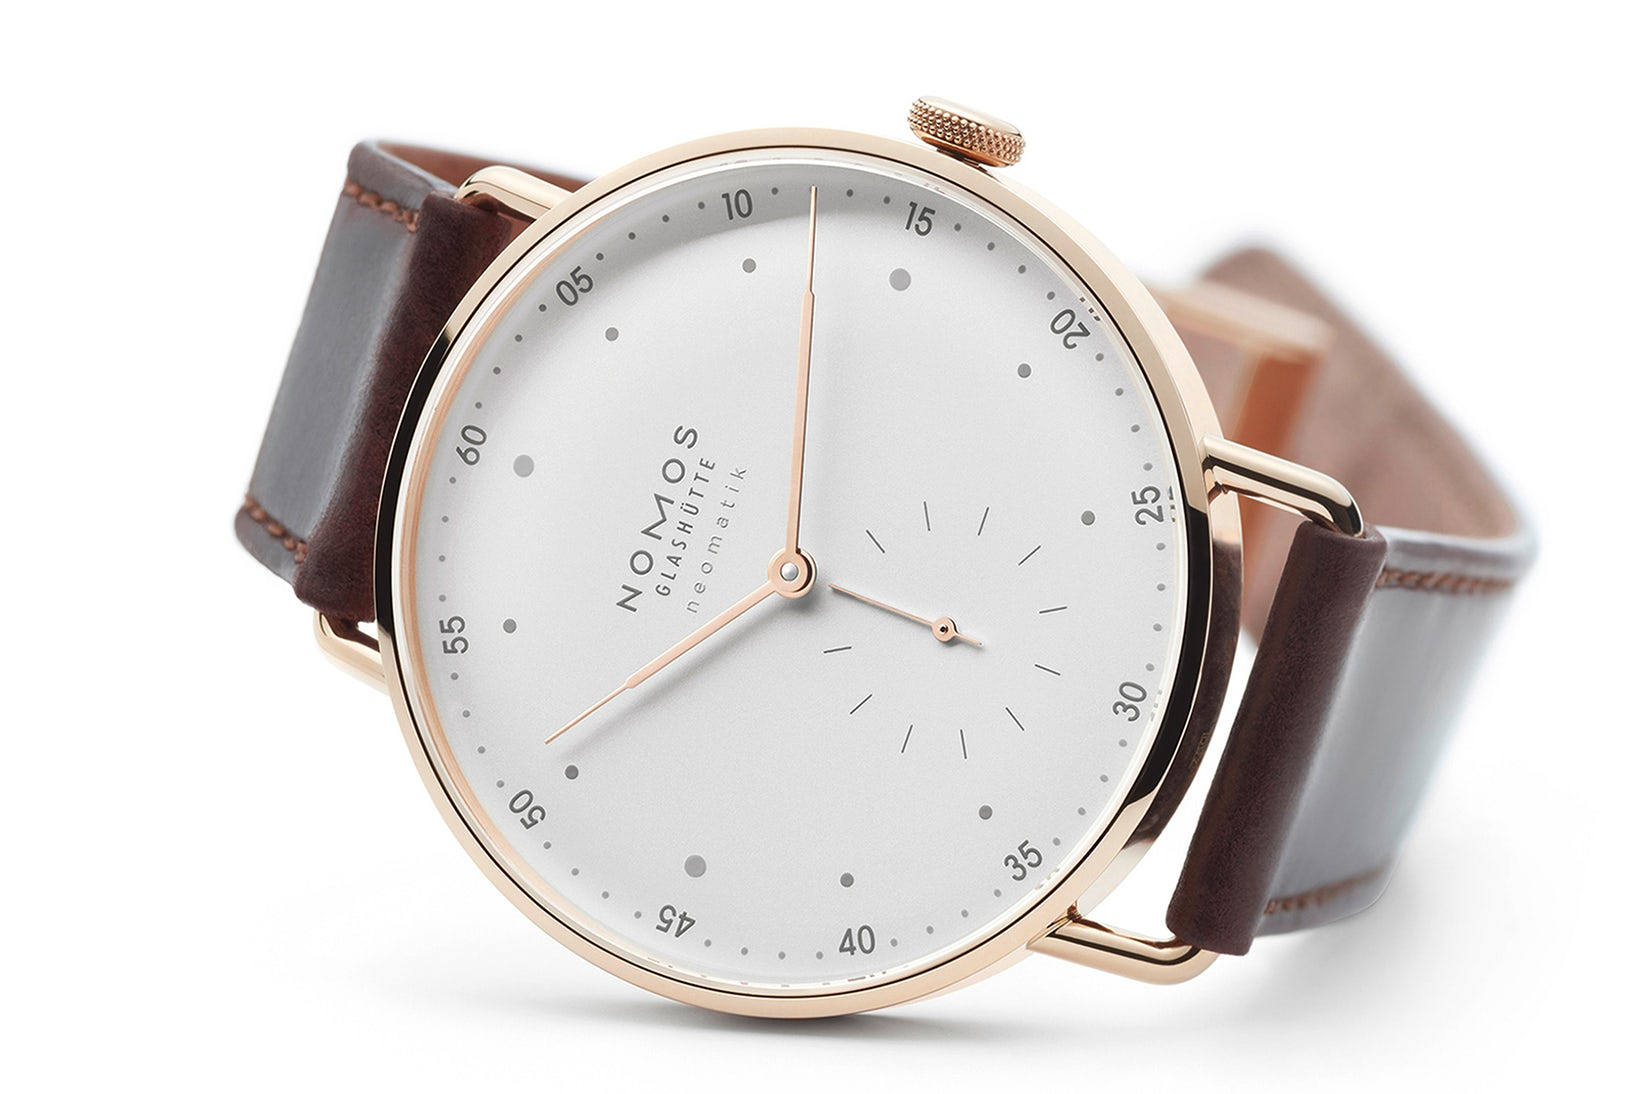 Now the Nomos Metro is available in solid 18k rose gold